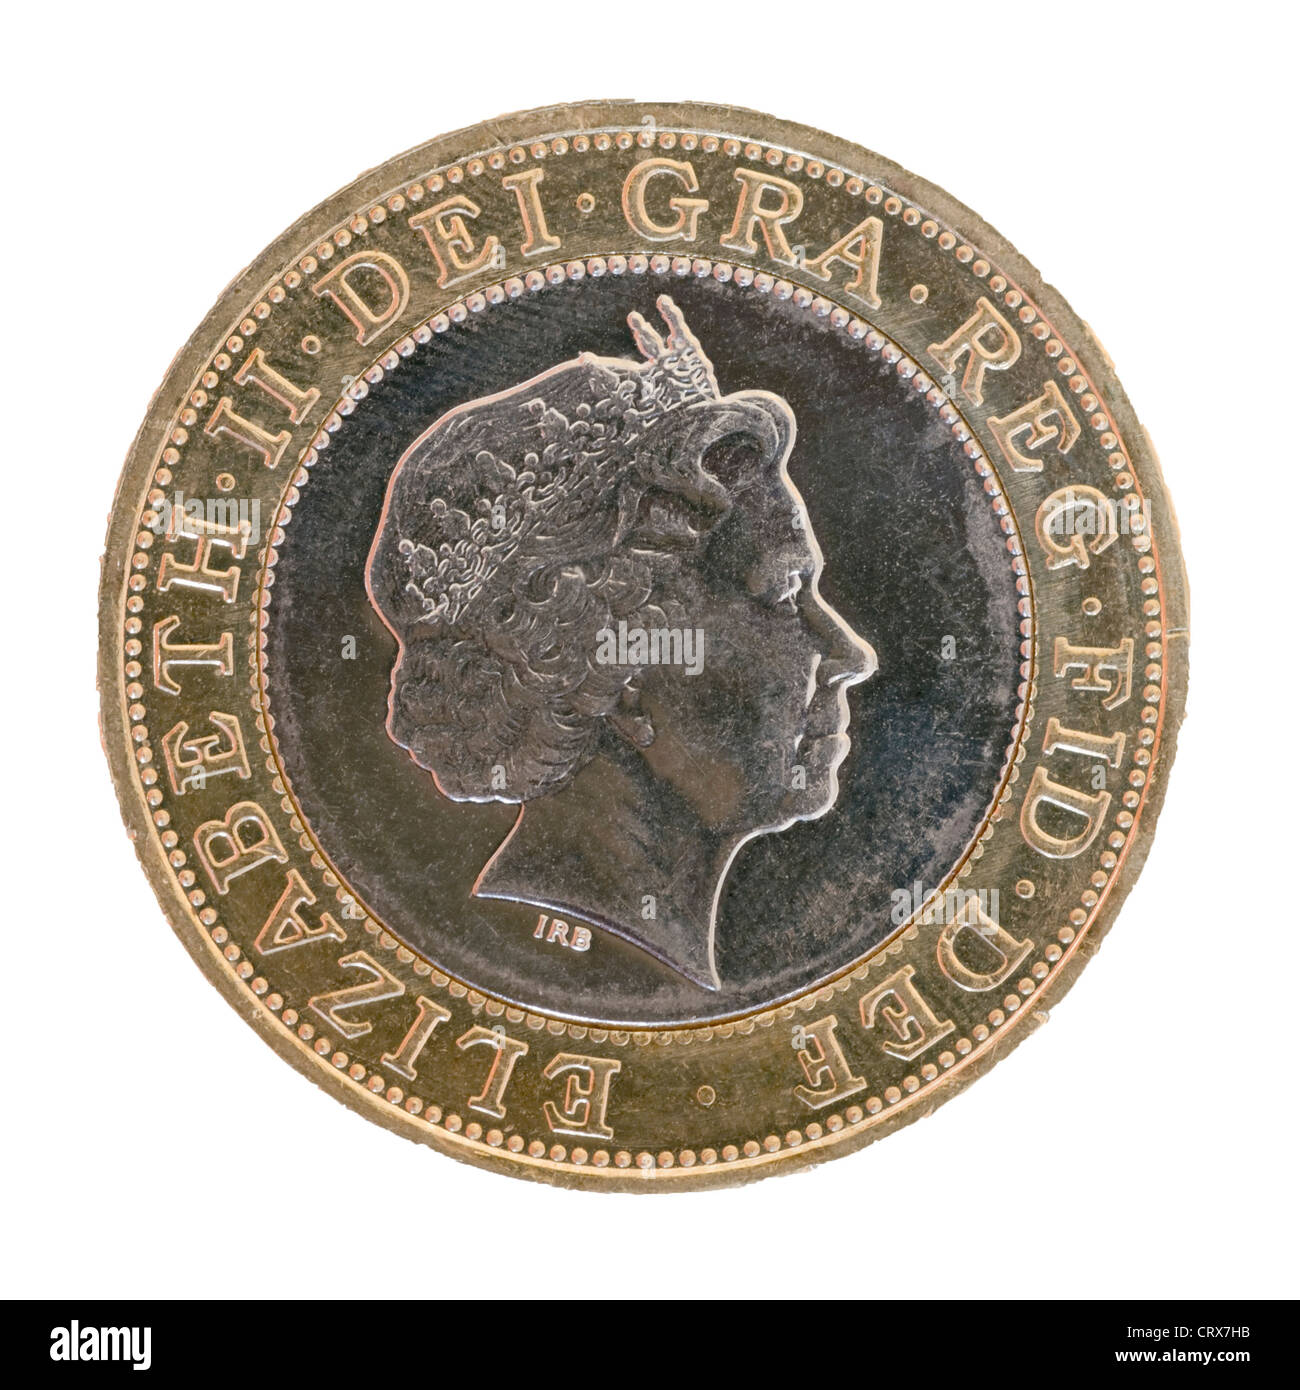 British two pound coin - Stock Image